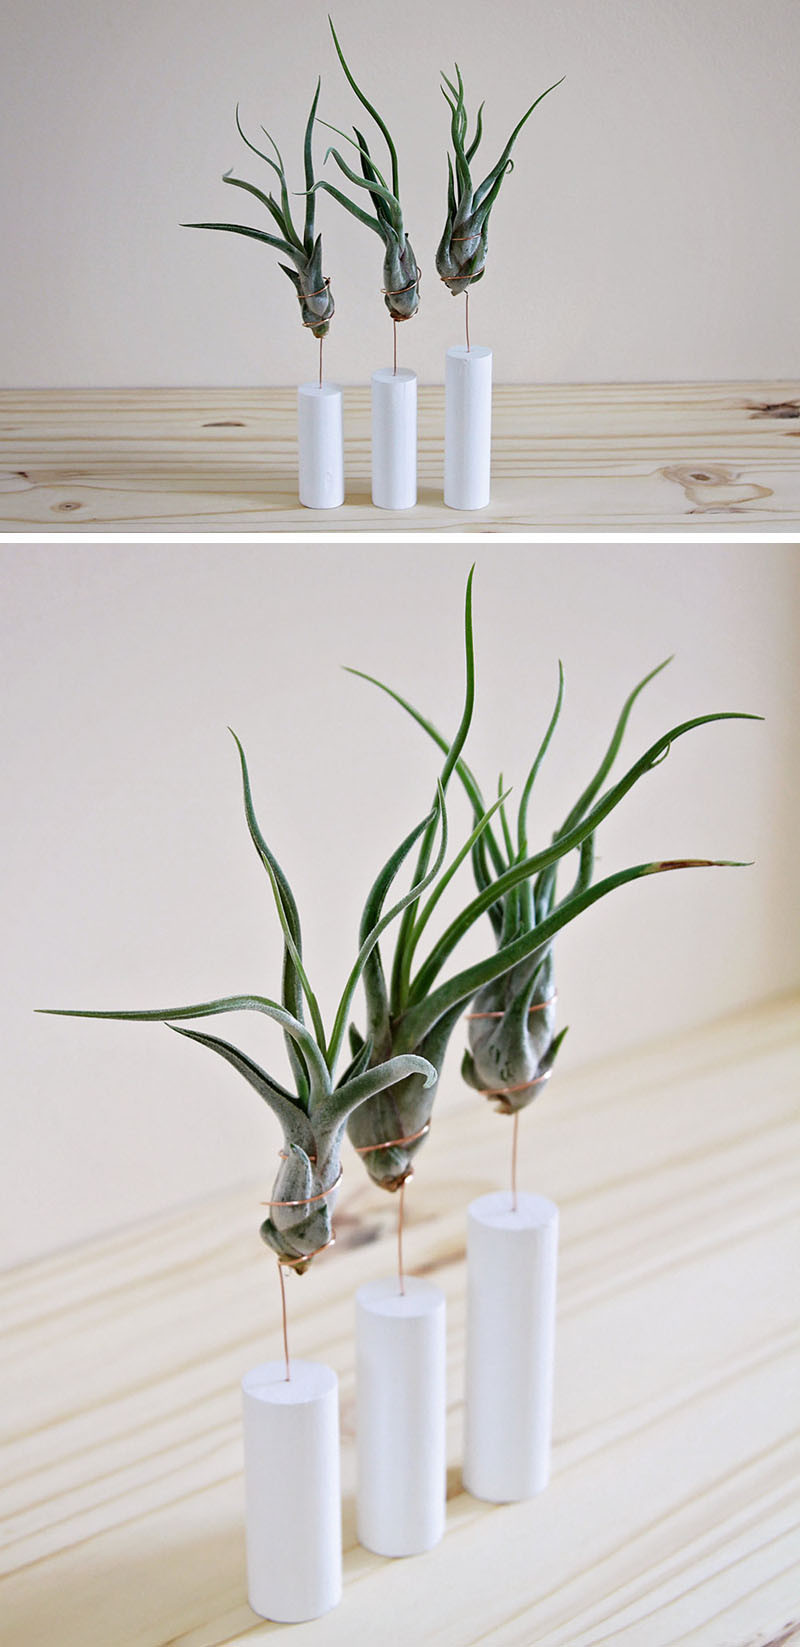 12 elegant ways to bring air plants into your home contemporist - Elegant ways to display air plants in your home ...